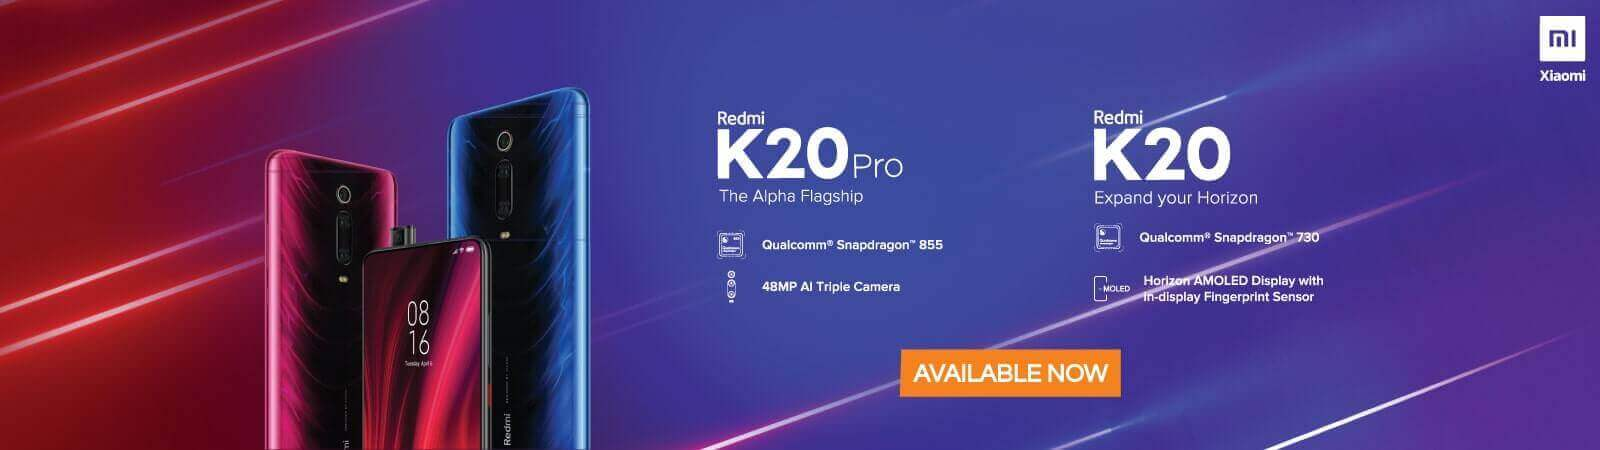 k20_and_k20pro_available_now_july_30_desktop-1600x450